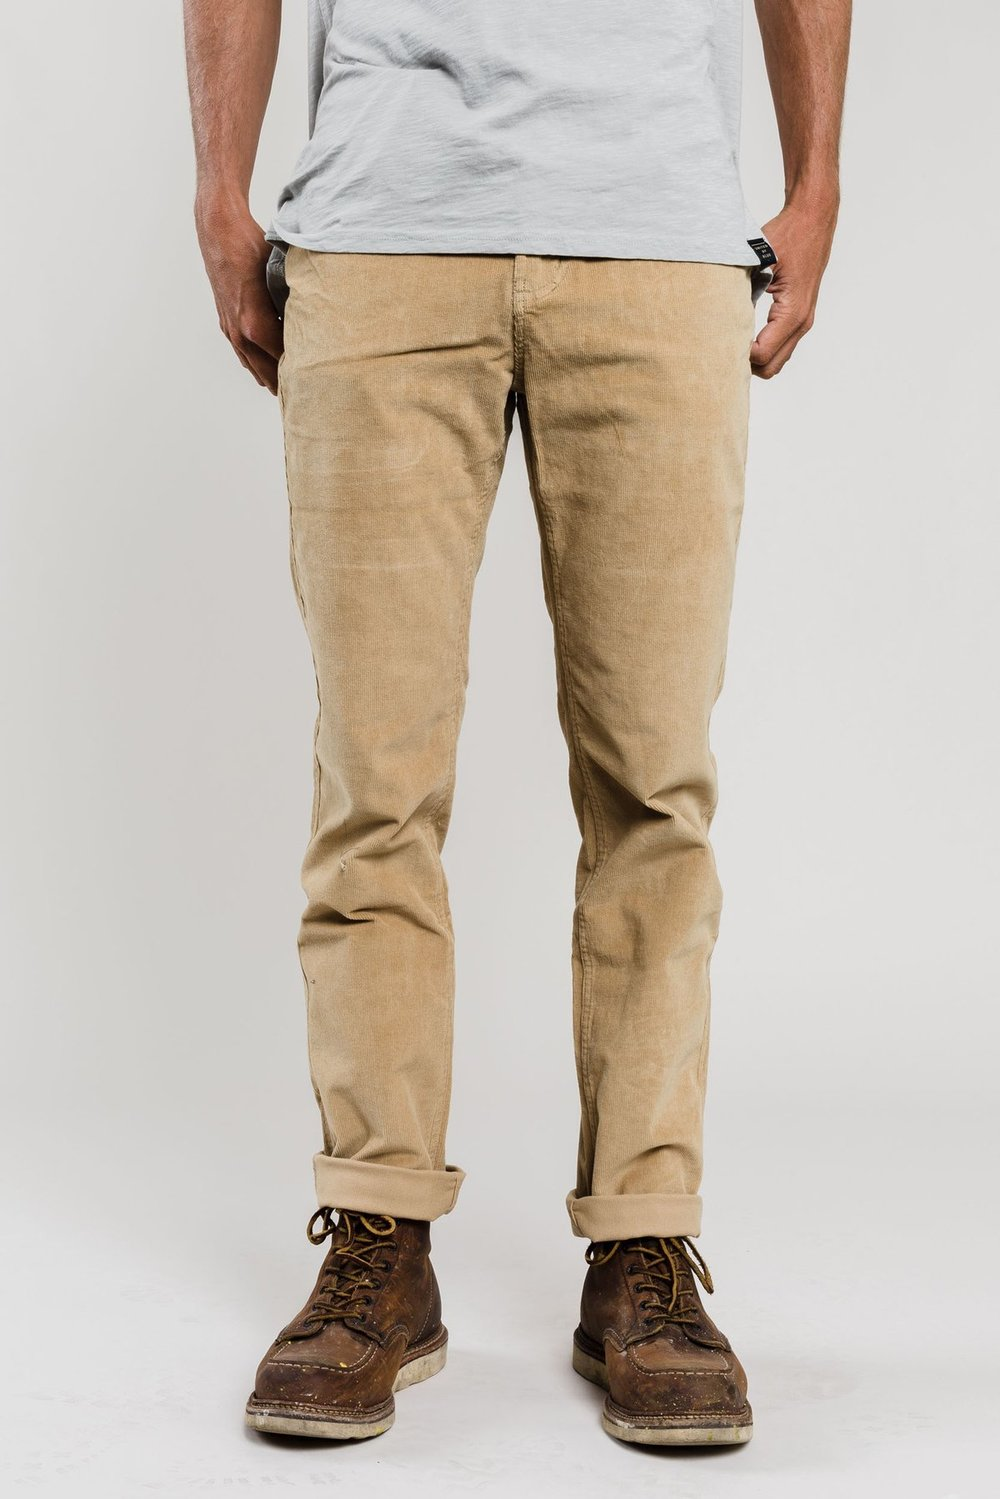 harrison corduroy pant   $88 | united by blue